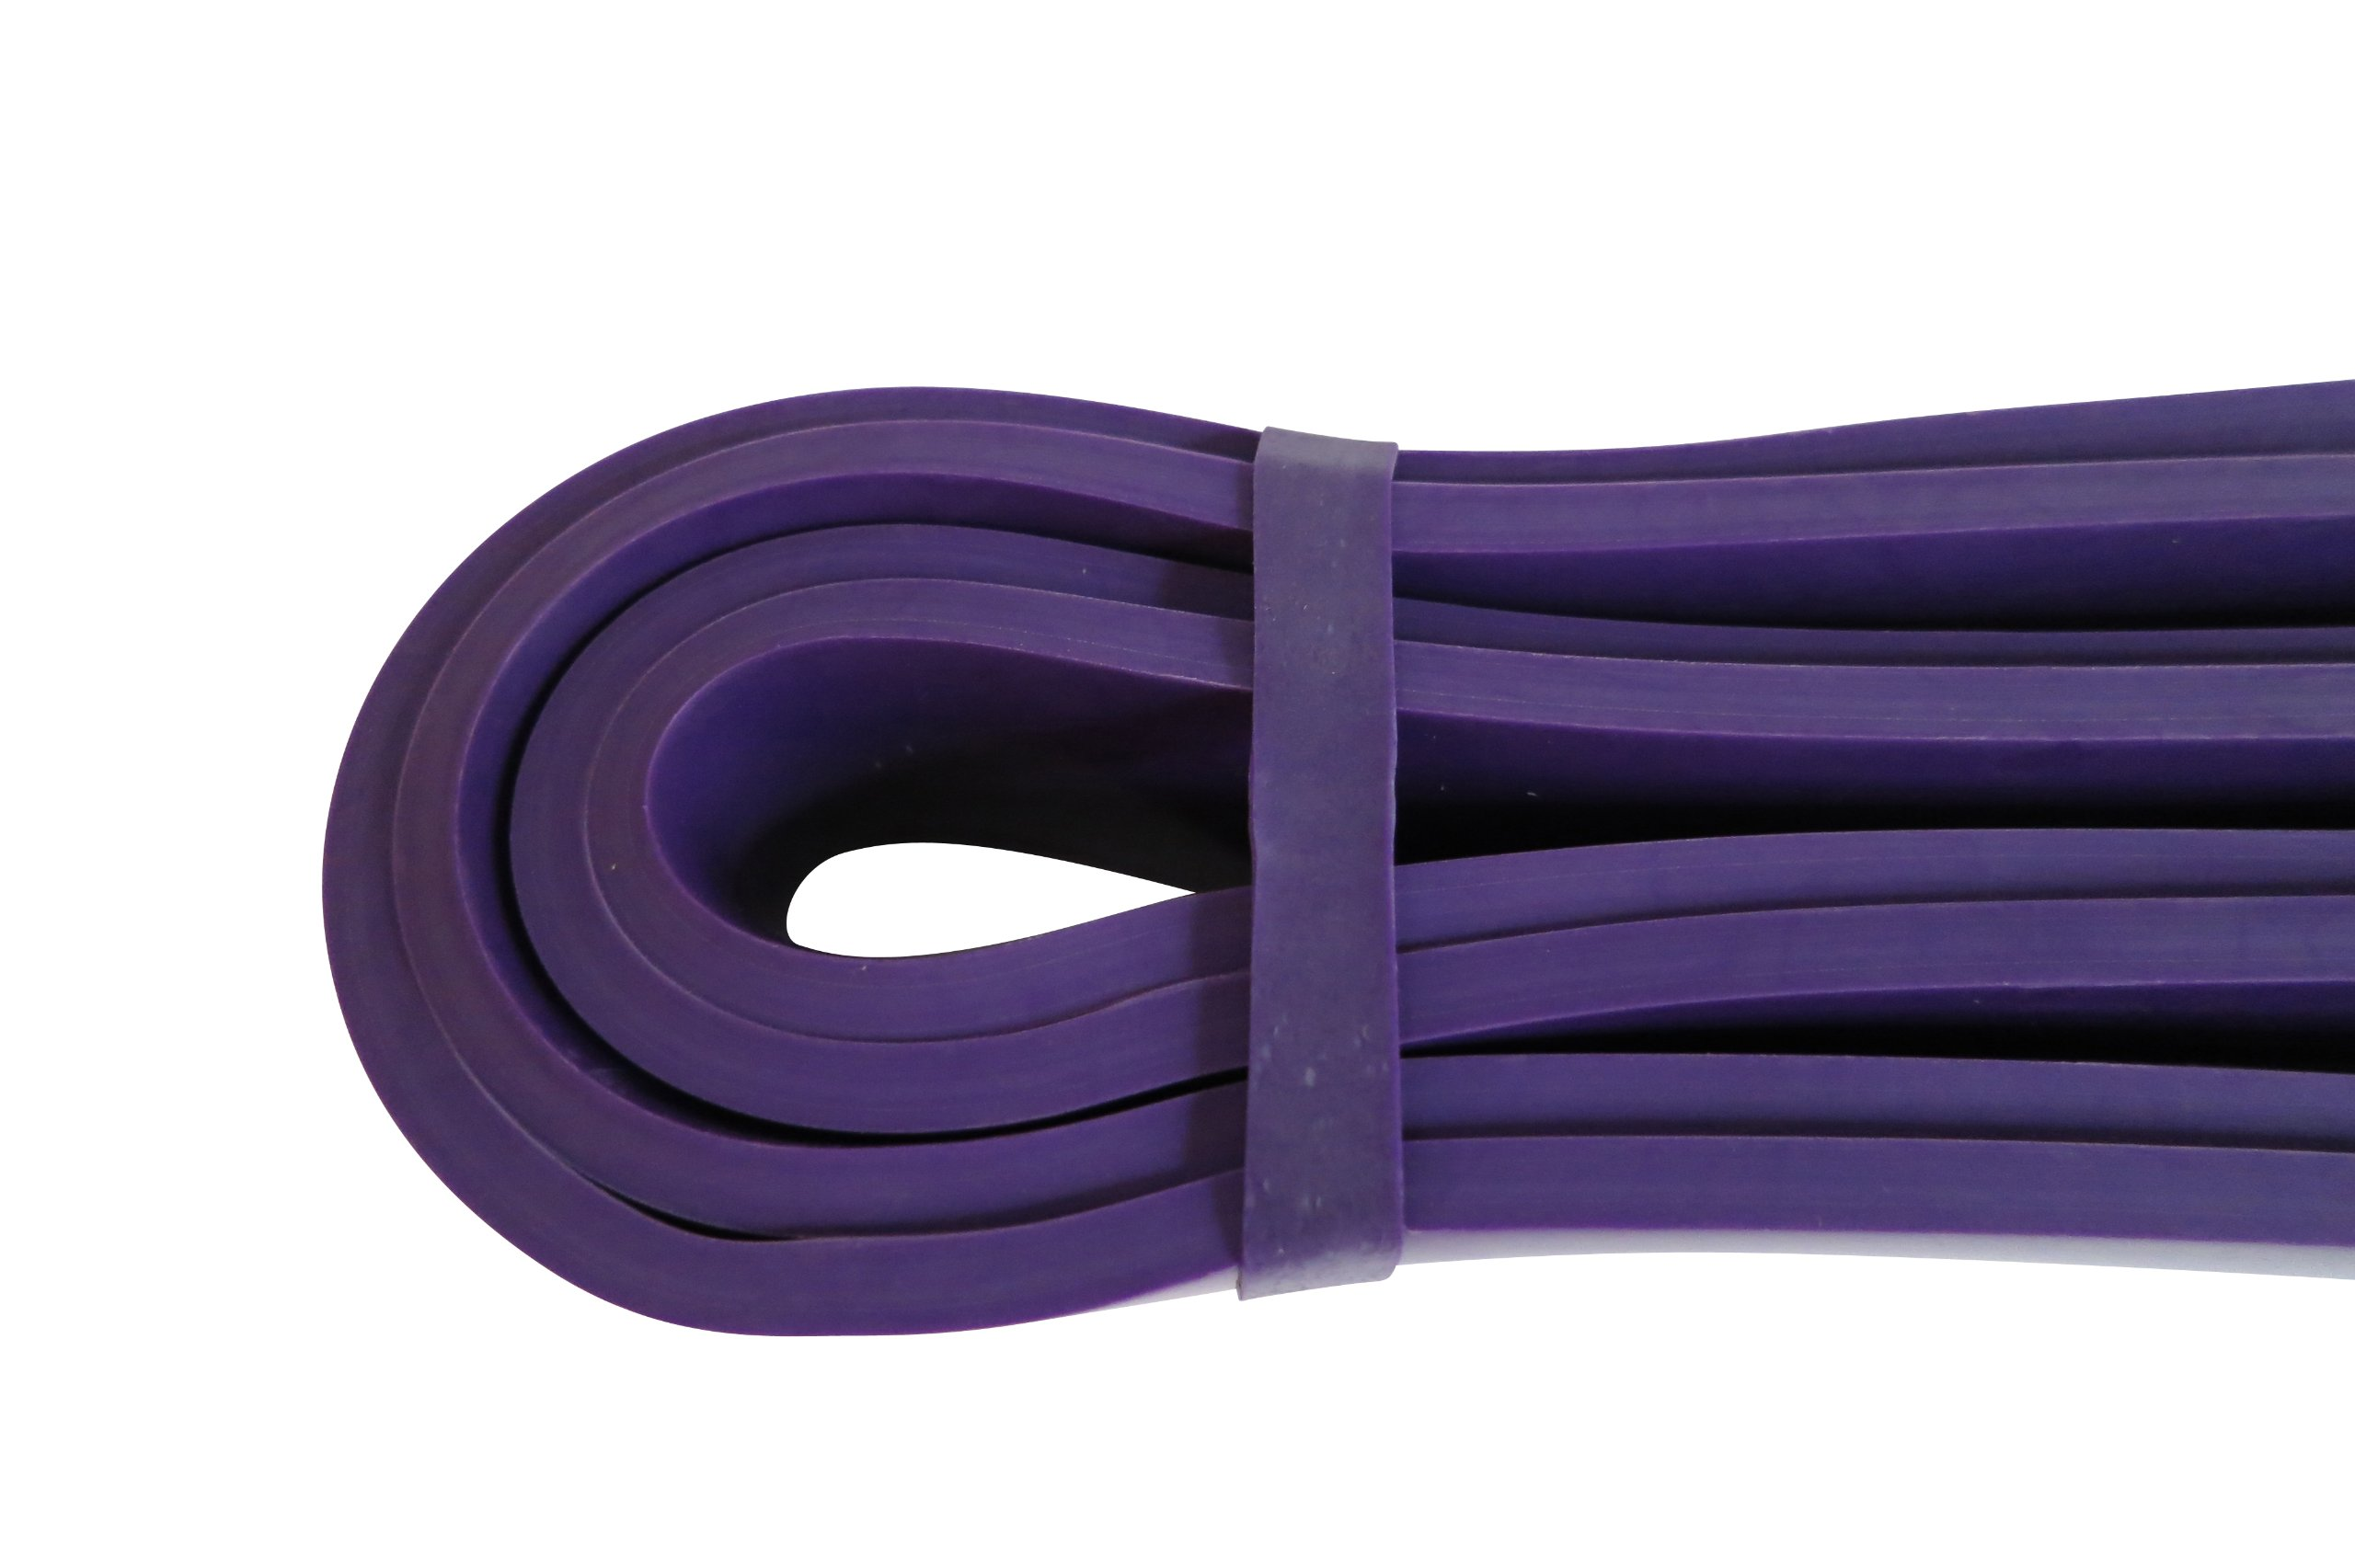 WODFitters Pull Up Band (Purple) Assisted Pull-up Resistance Band - Pull Up Assist Band Ideal for Assisted Pull Ups, Chin Ups or Power Lifting by WODFitters (Image #5)